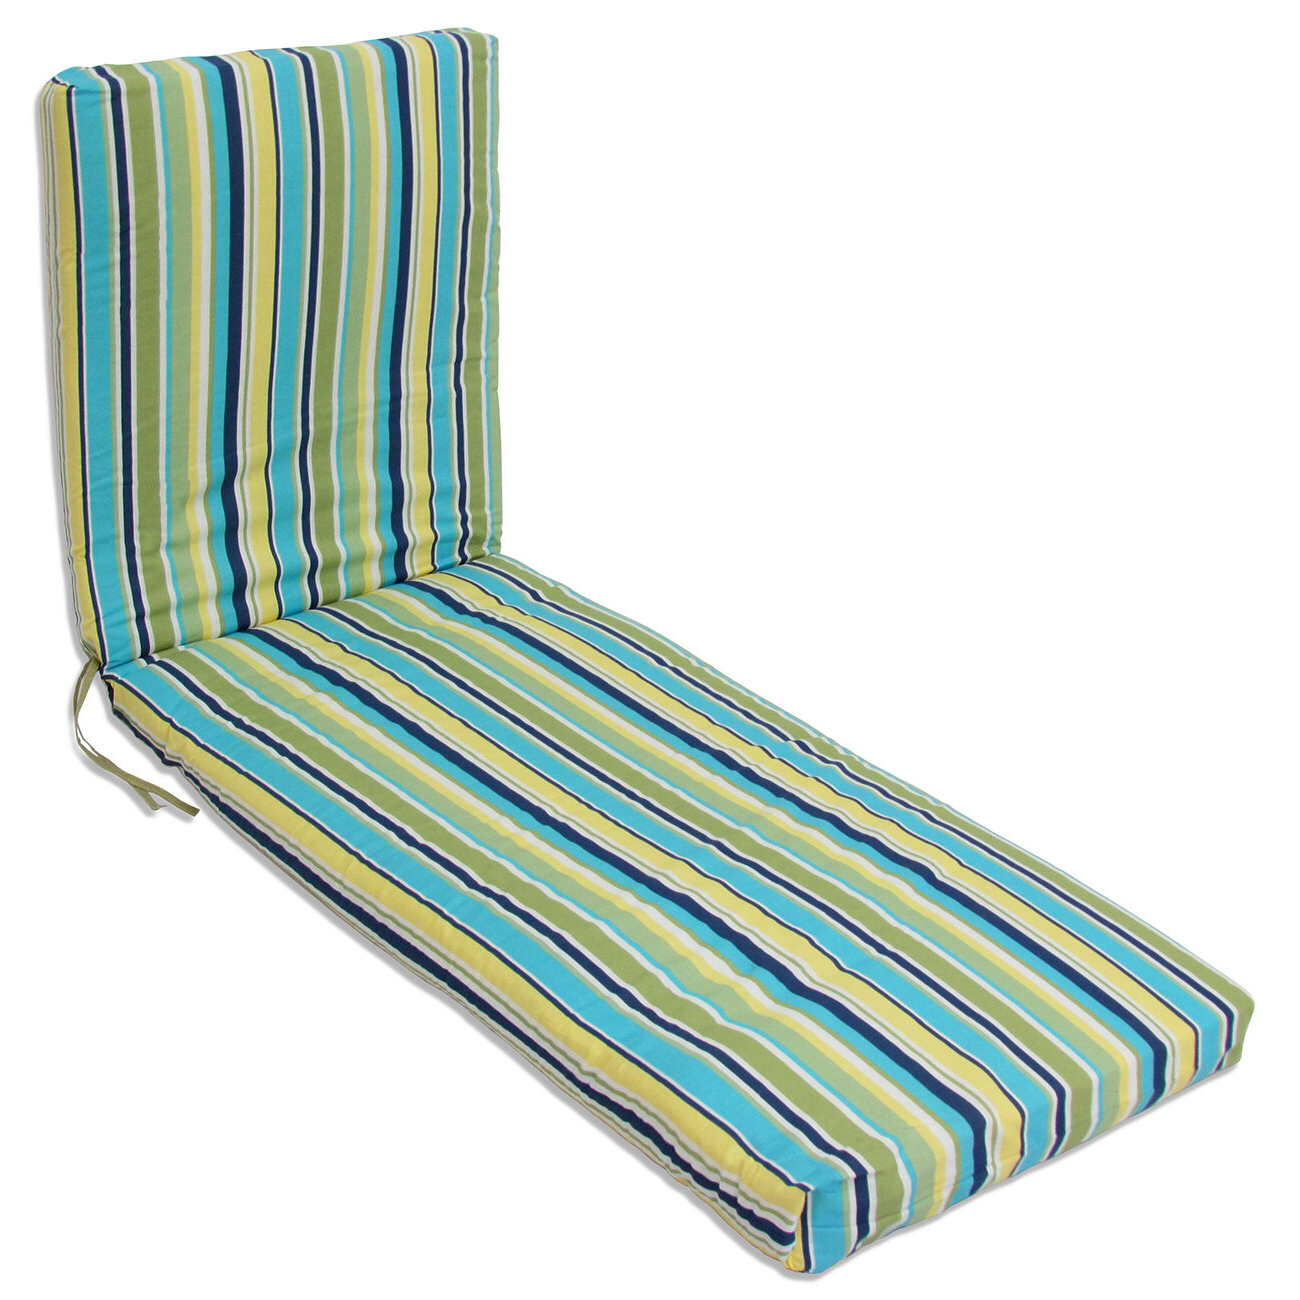 Indoor/outdoor Chaise Lounge Cushion In Recent Indoor Outdoor Textured Bright Chaise Lounges With Sunbrella Fabric (Gallery 16 of 25)